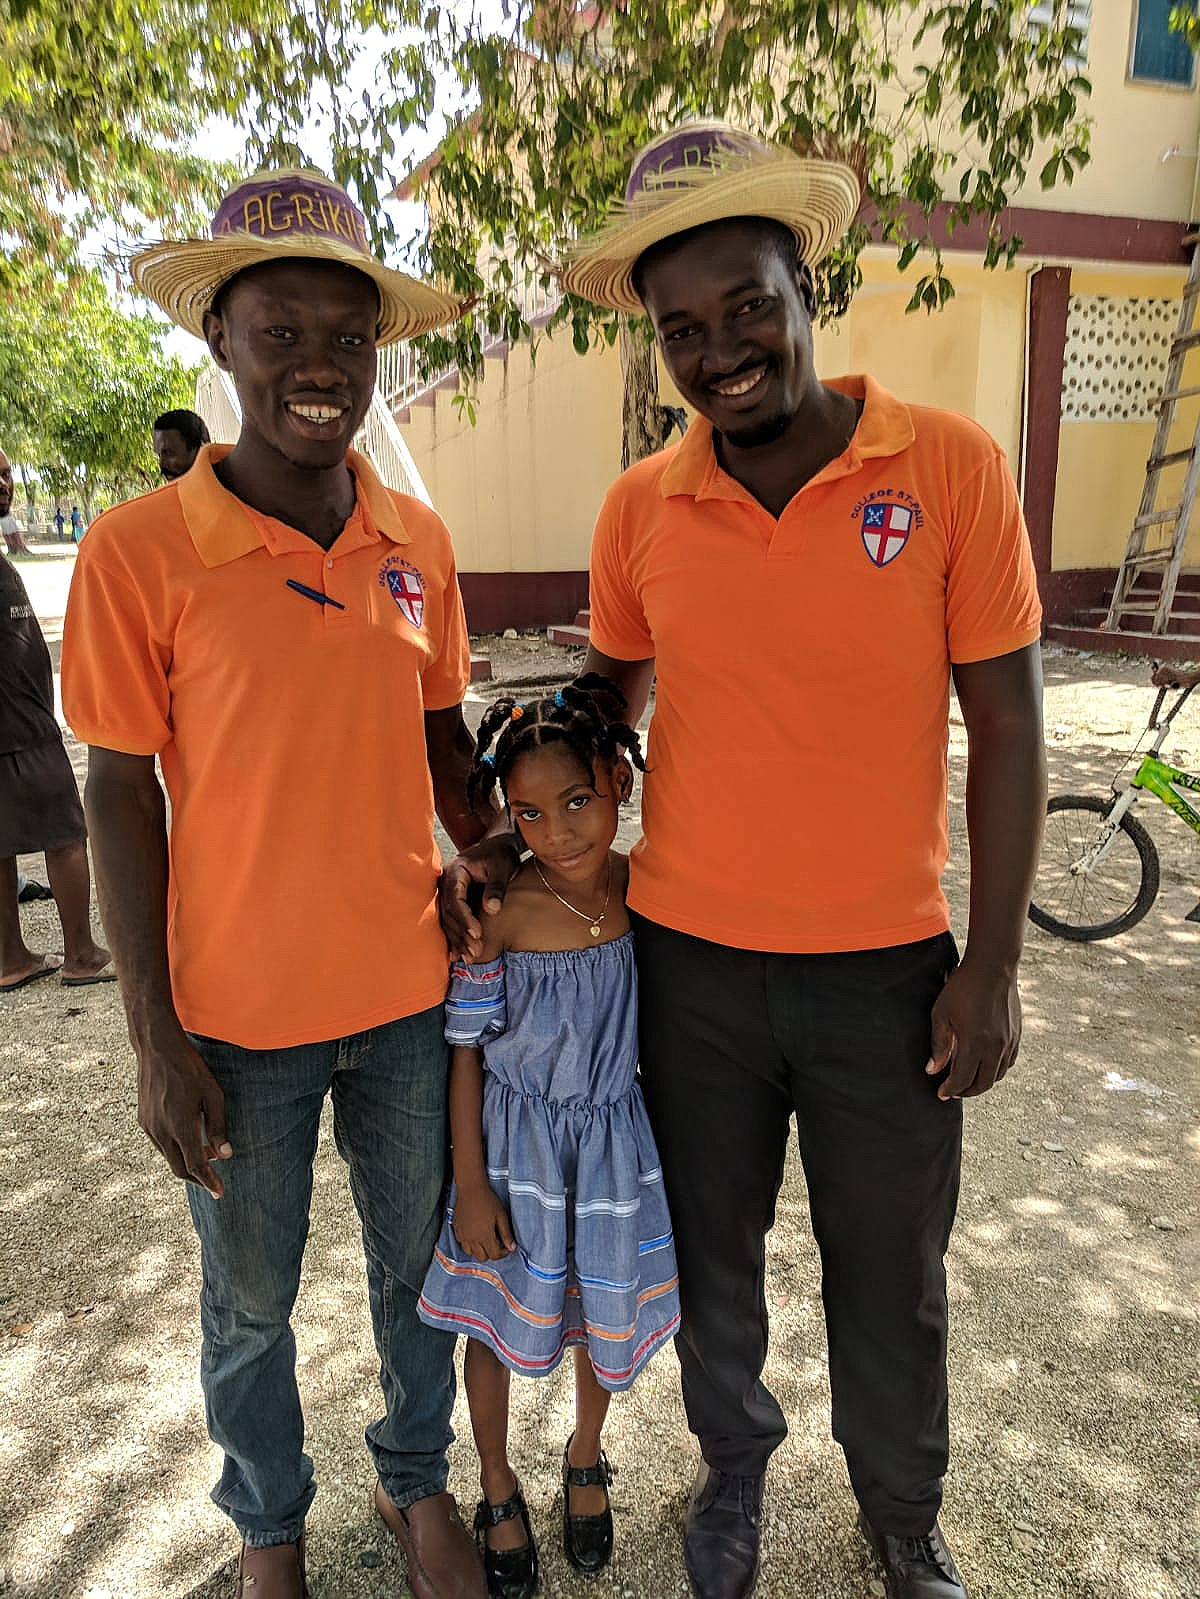 Agronomist Raphael (right) stands with Vladimy (left) and a young Harvest Fest attendee. Raphael gave the keynote speech of the Harvest Fest, and Vladimy, the entrepreneurship teacher at Paul's School, emceed the event.